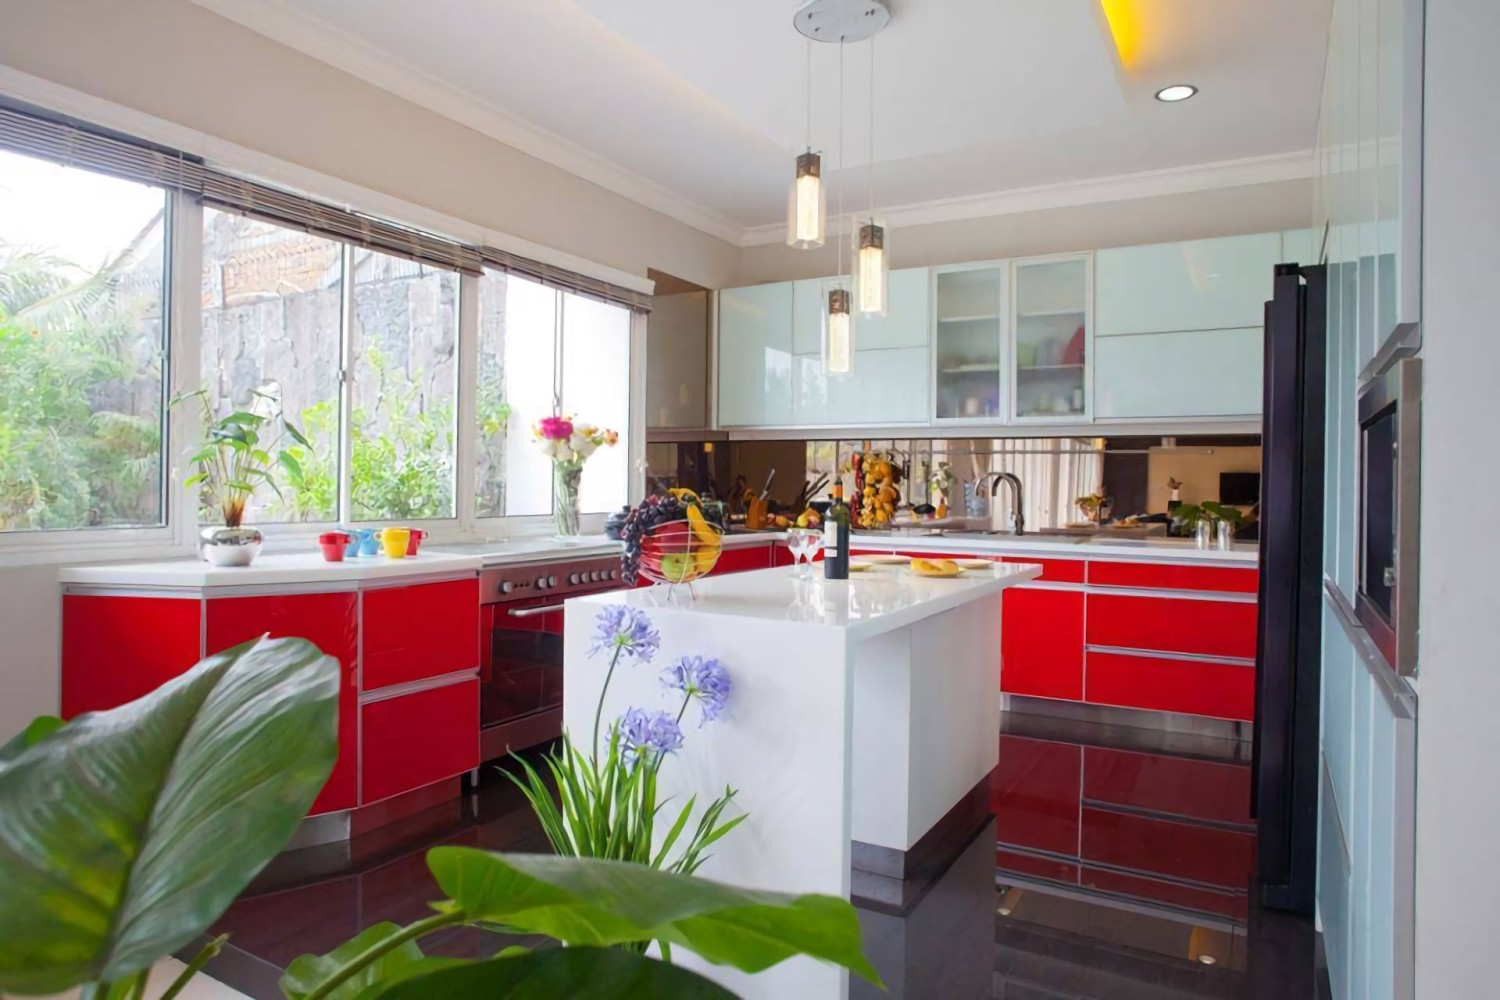 Modern Minimalist Kitchen-Red and White di Jakarta karya Zeno Living (Sumber: arsitag.com)